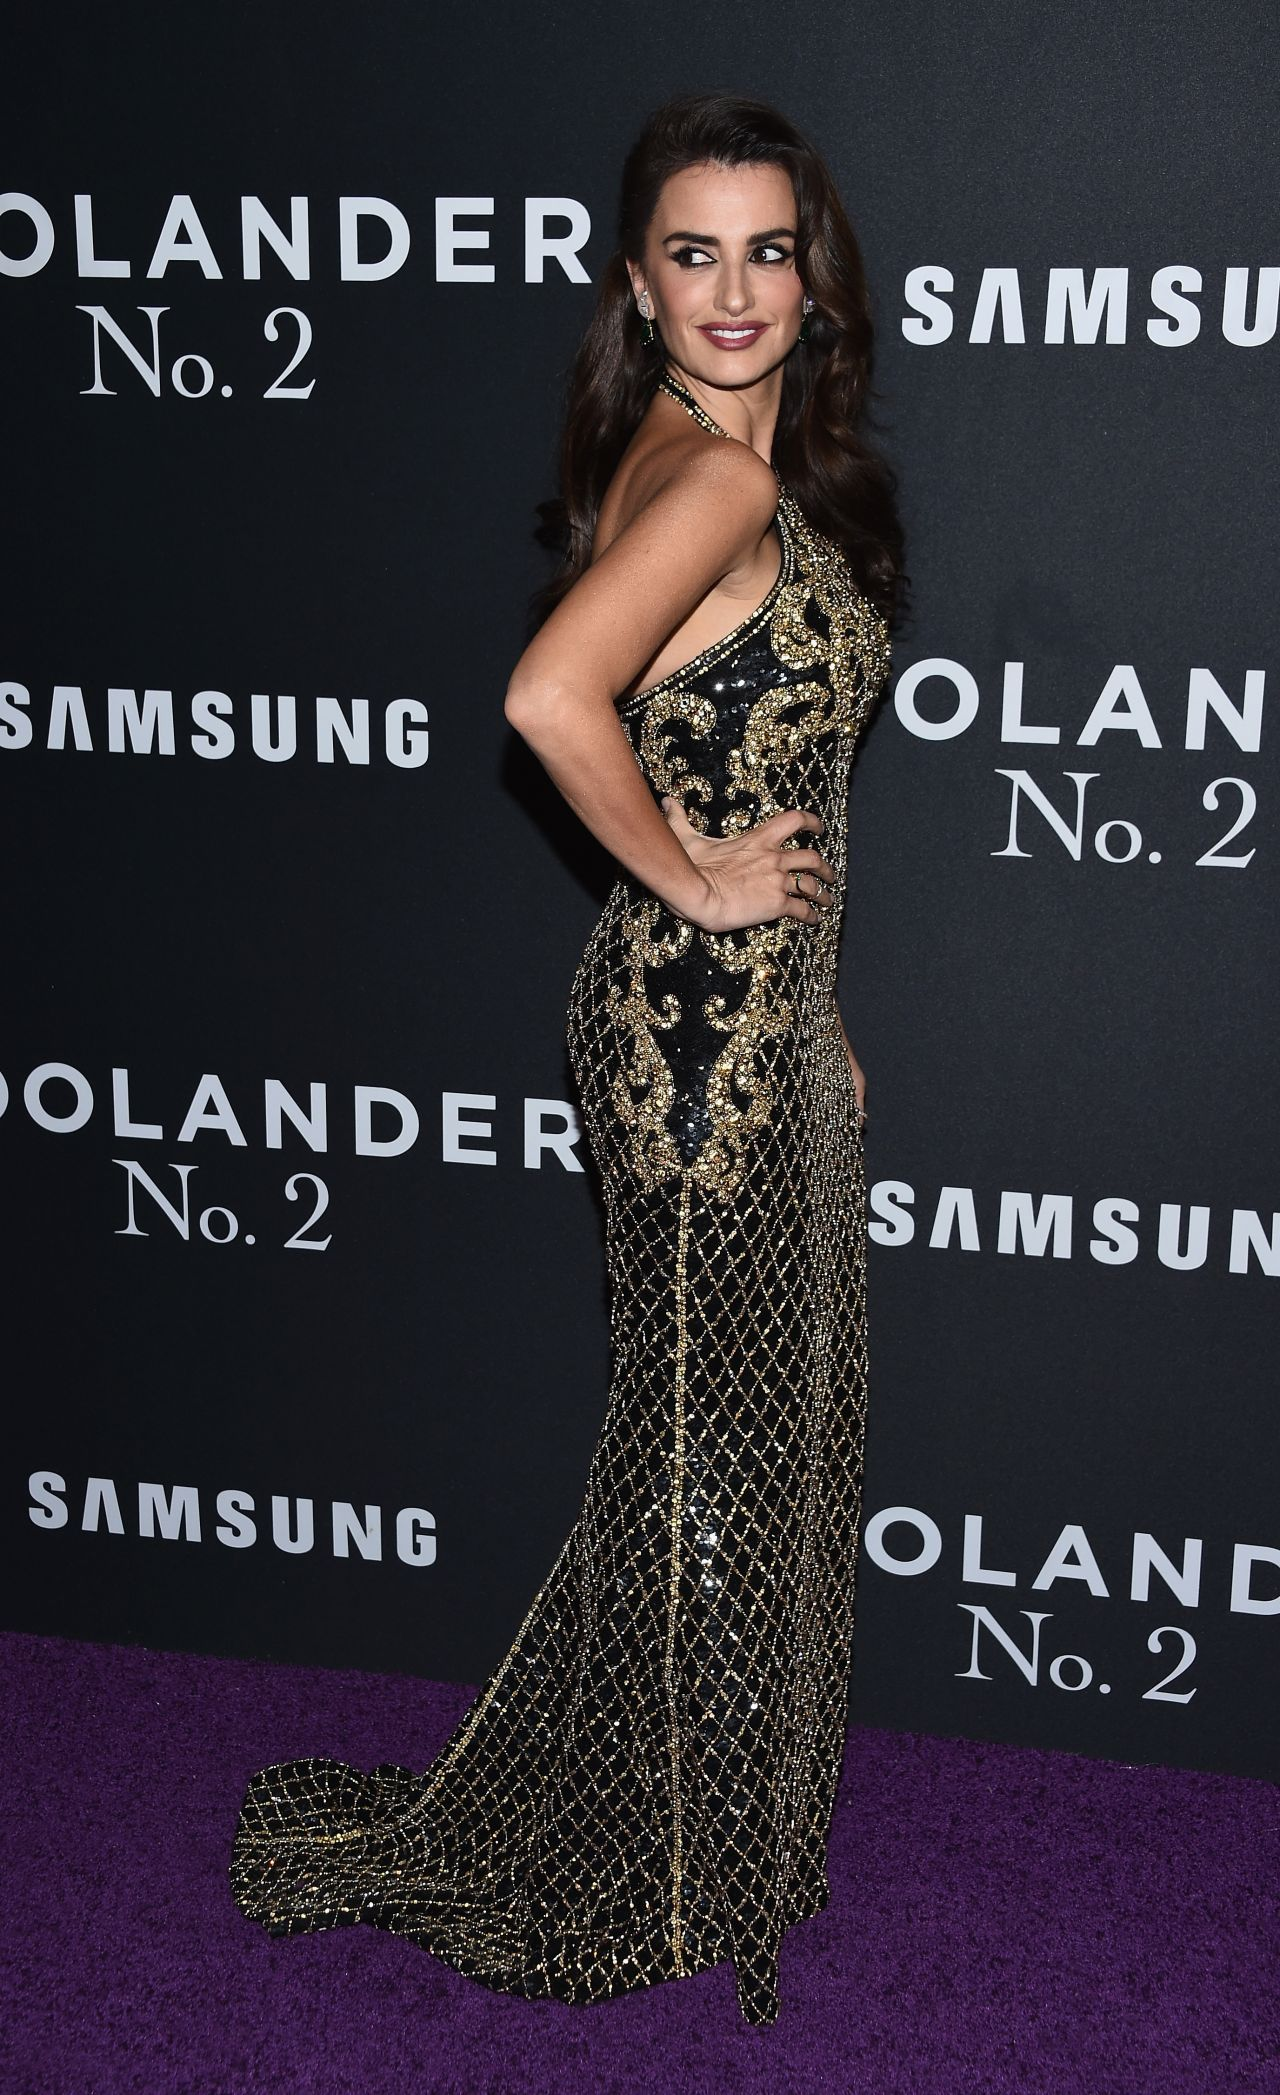 penelope-cruz-zoolander-2-world-premiere-in-new-york-city-ny-8